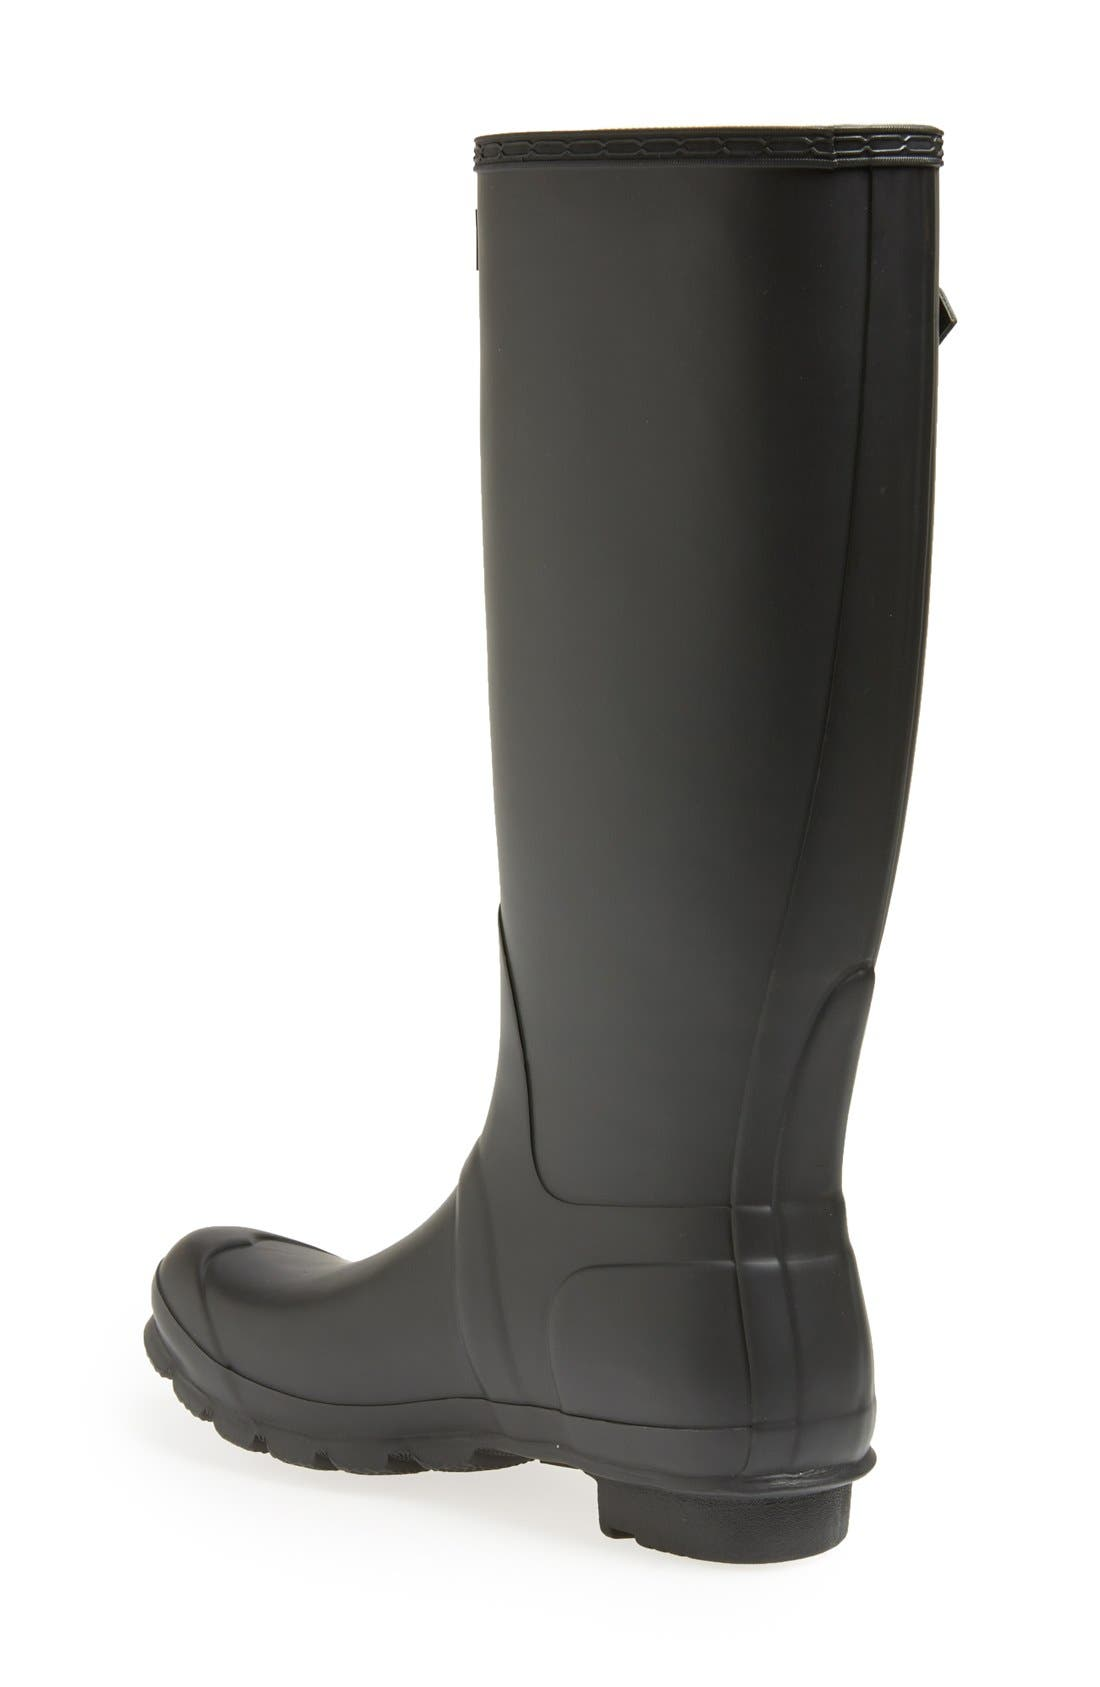 Original Tall Waterproof Rain Boot,                             Alternate thumbnail 4, color,                             BLACK MATTE